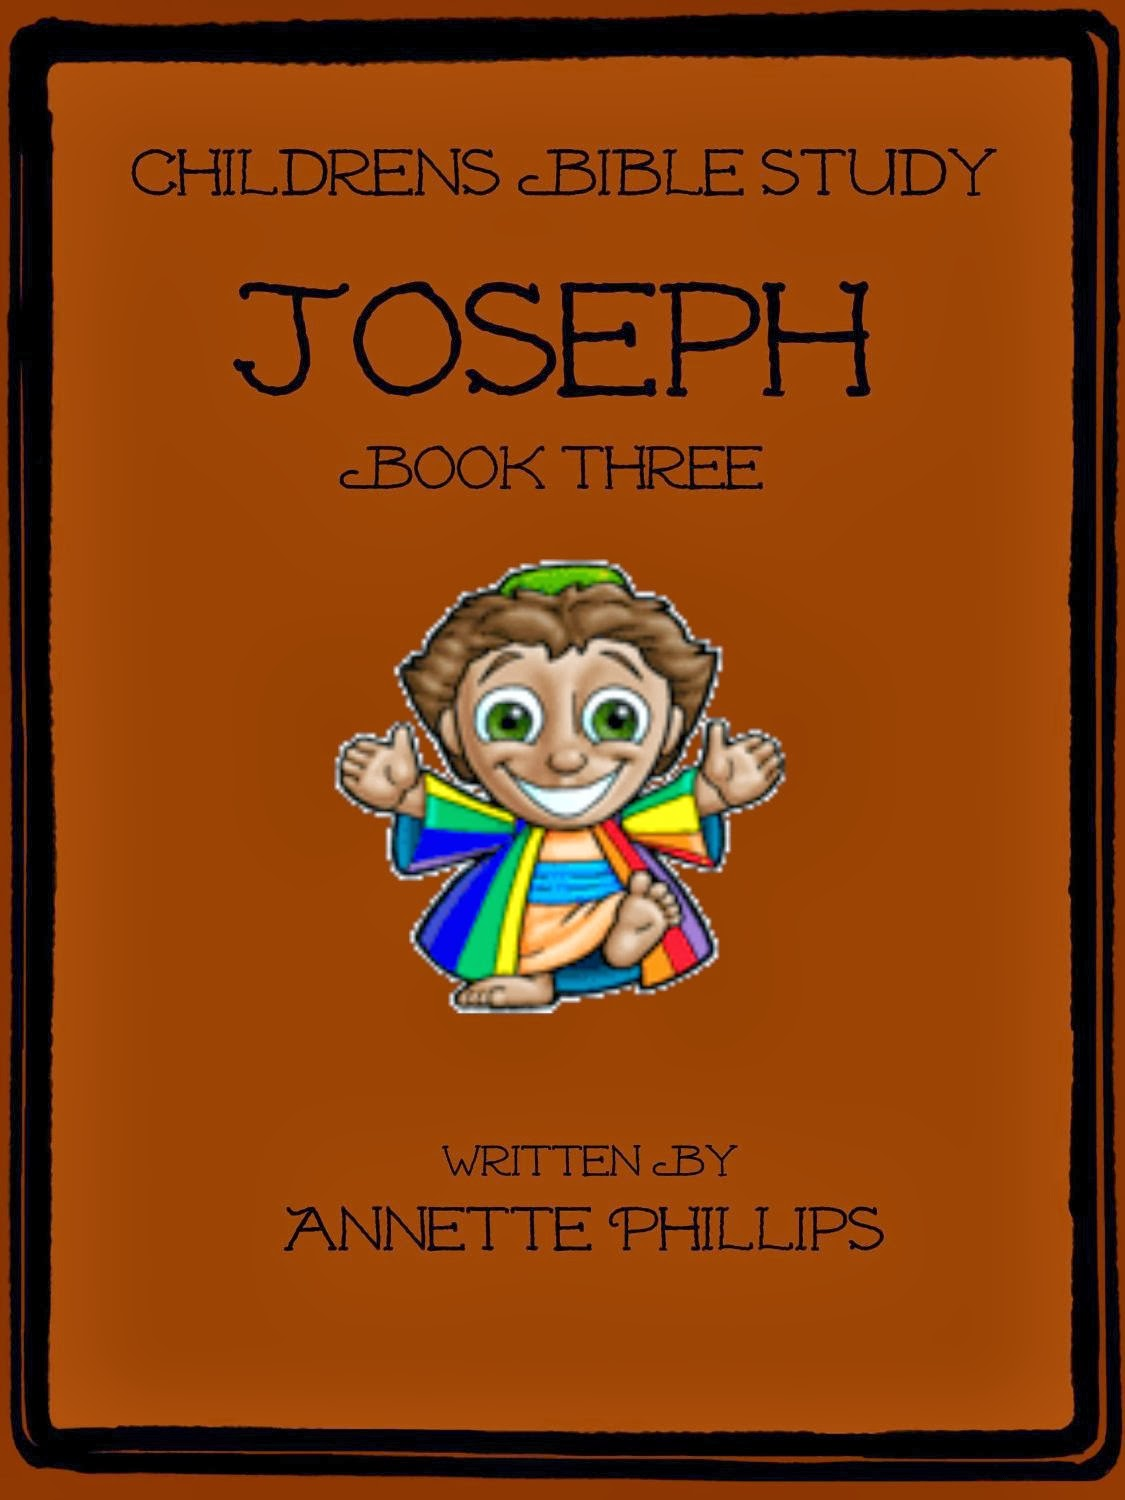 http://www.amazon.com/Bible-Study-Childrens-Joseph-ebook/dp/B00A0RMM54/ref=sr_1_11?s=digital-text&ie=UTF8&qid=1390697416&sr=1-11&keywords=childrens+bible+study